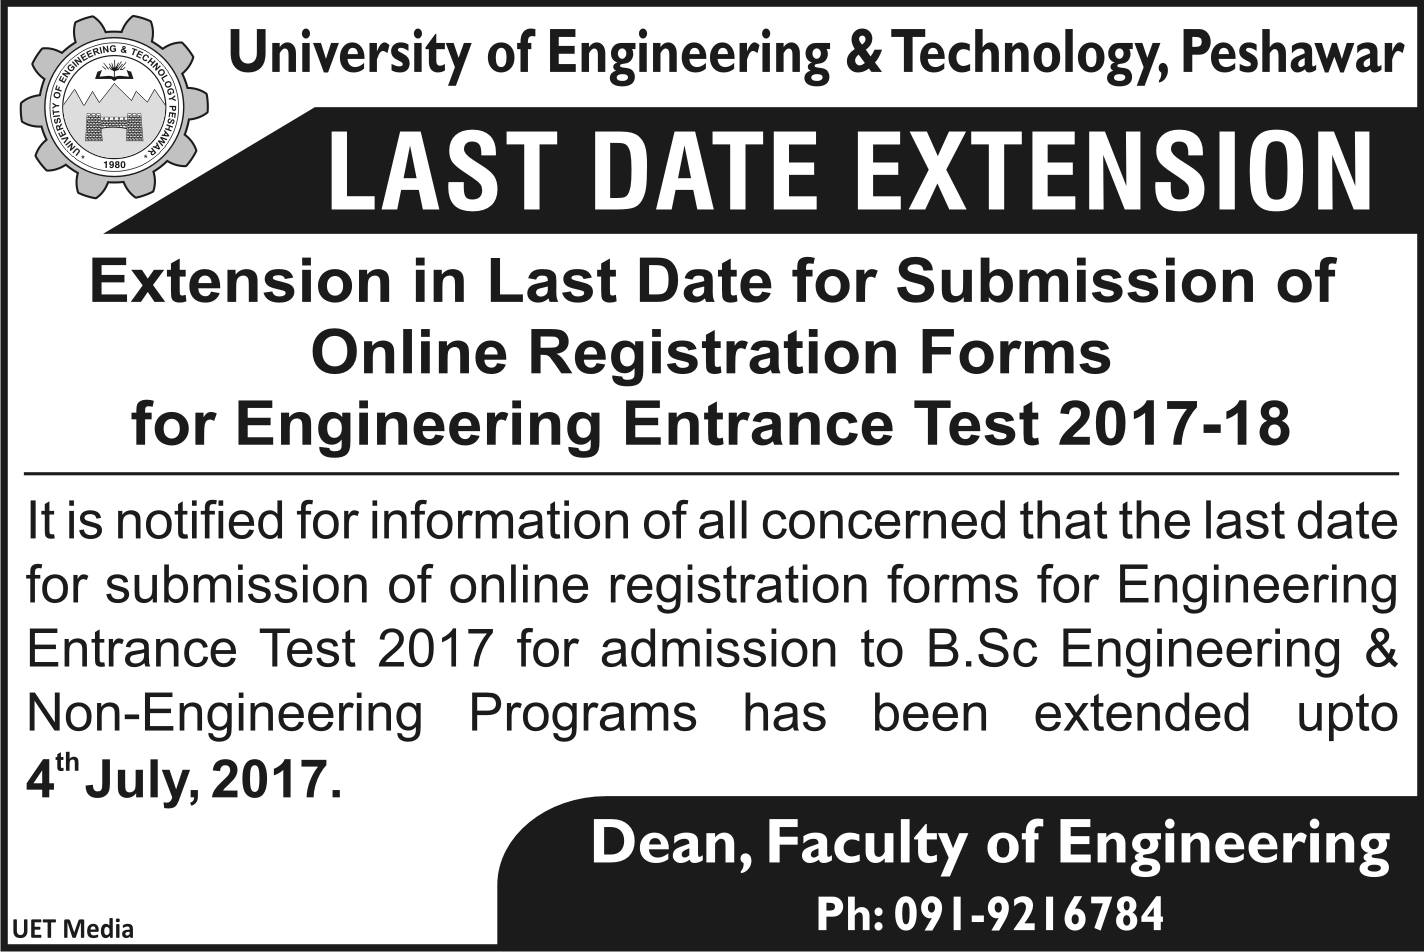 University of Engineering & Technology (UET), Peshawar